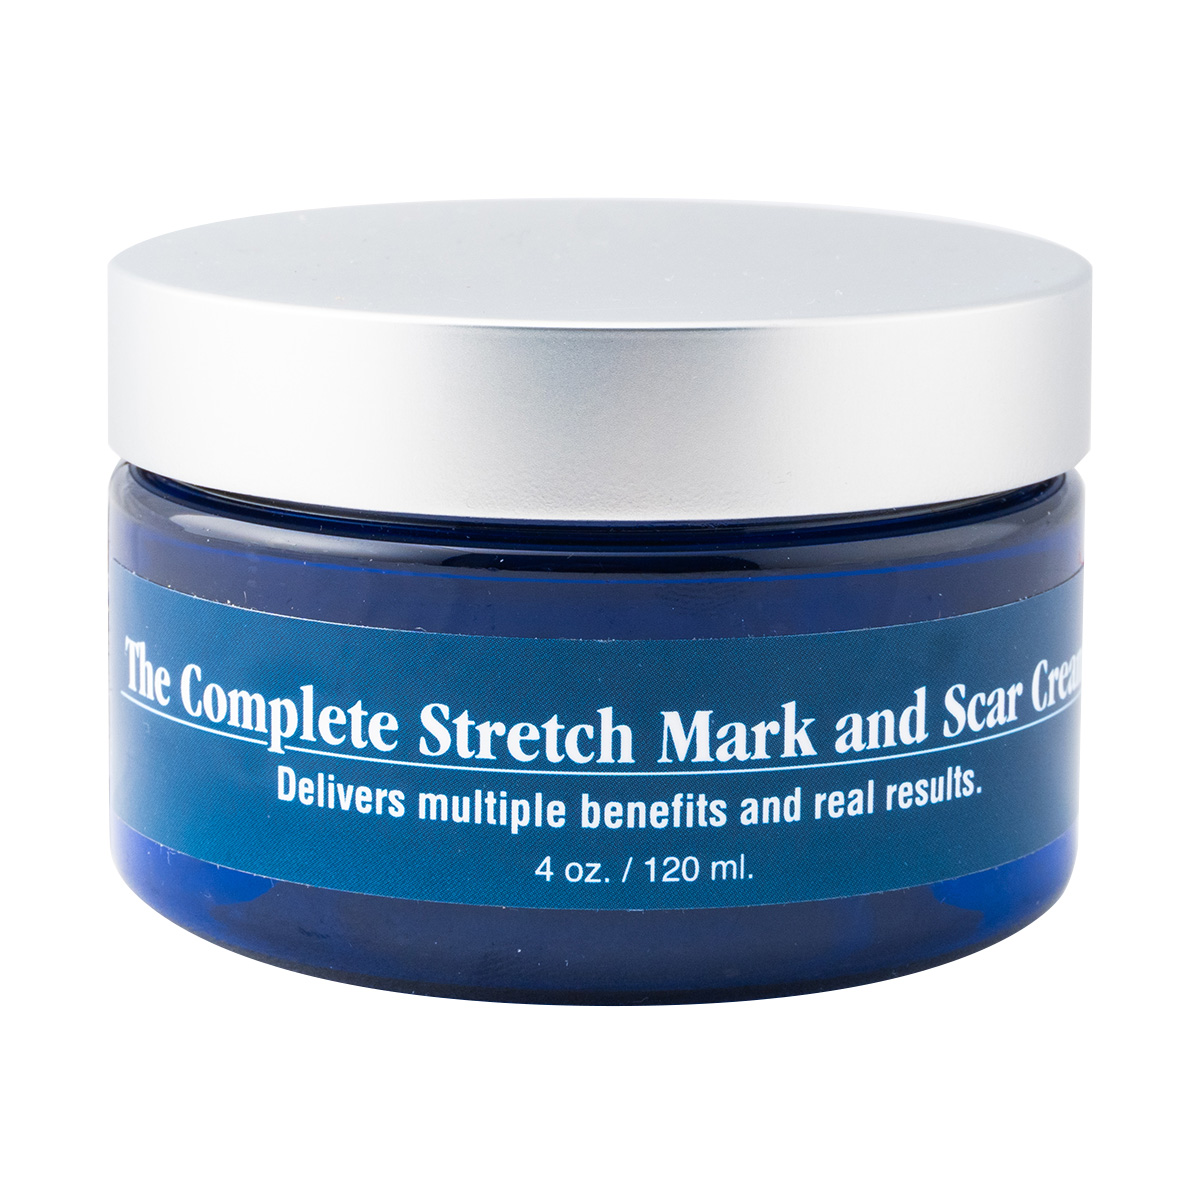 The Complete Stretch Mark And Scar Cream Private Label Skin Care